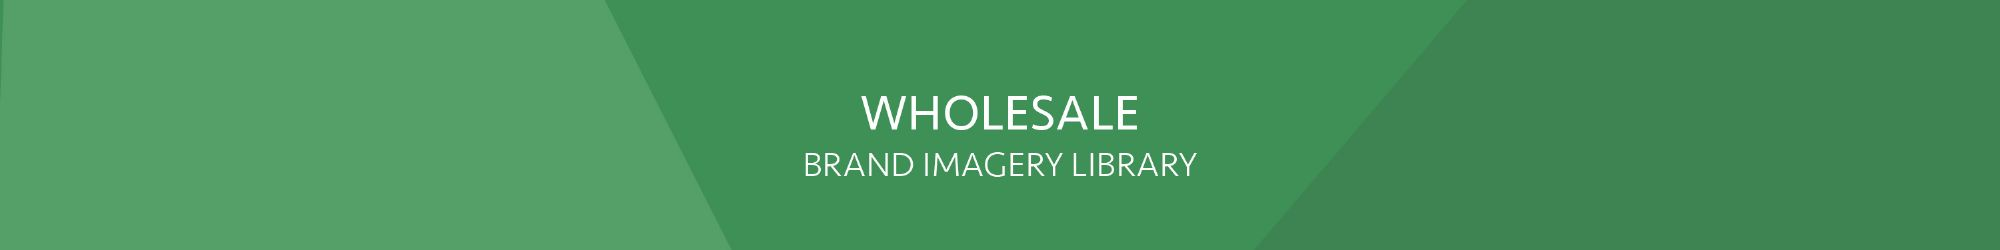 Wholesale Image Library